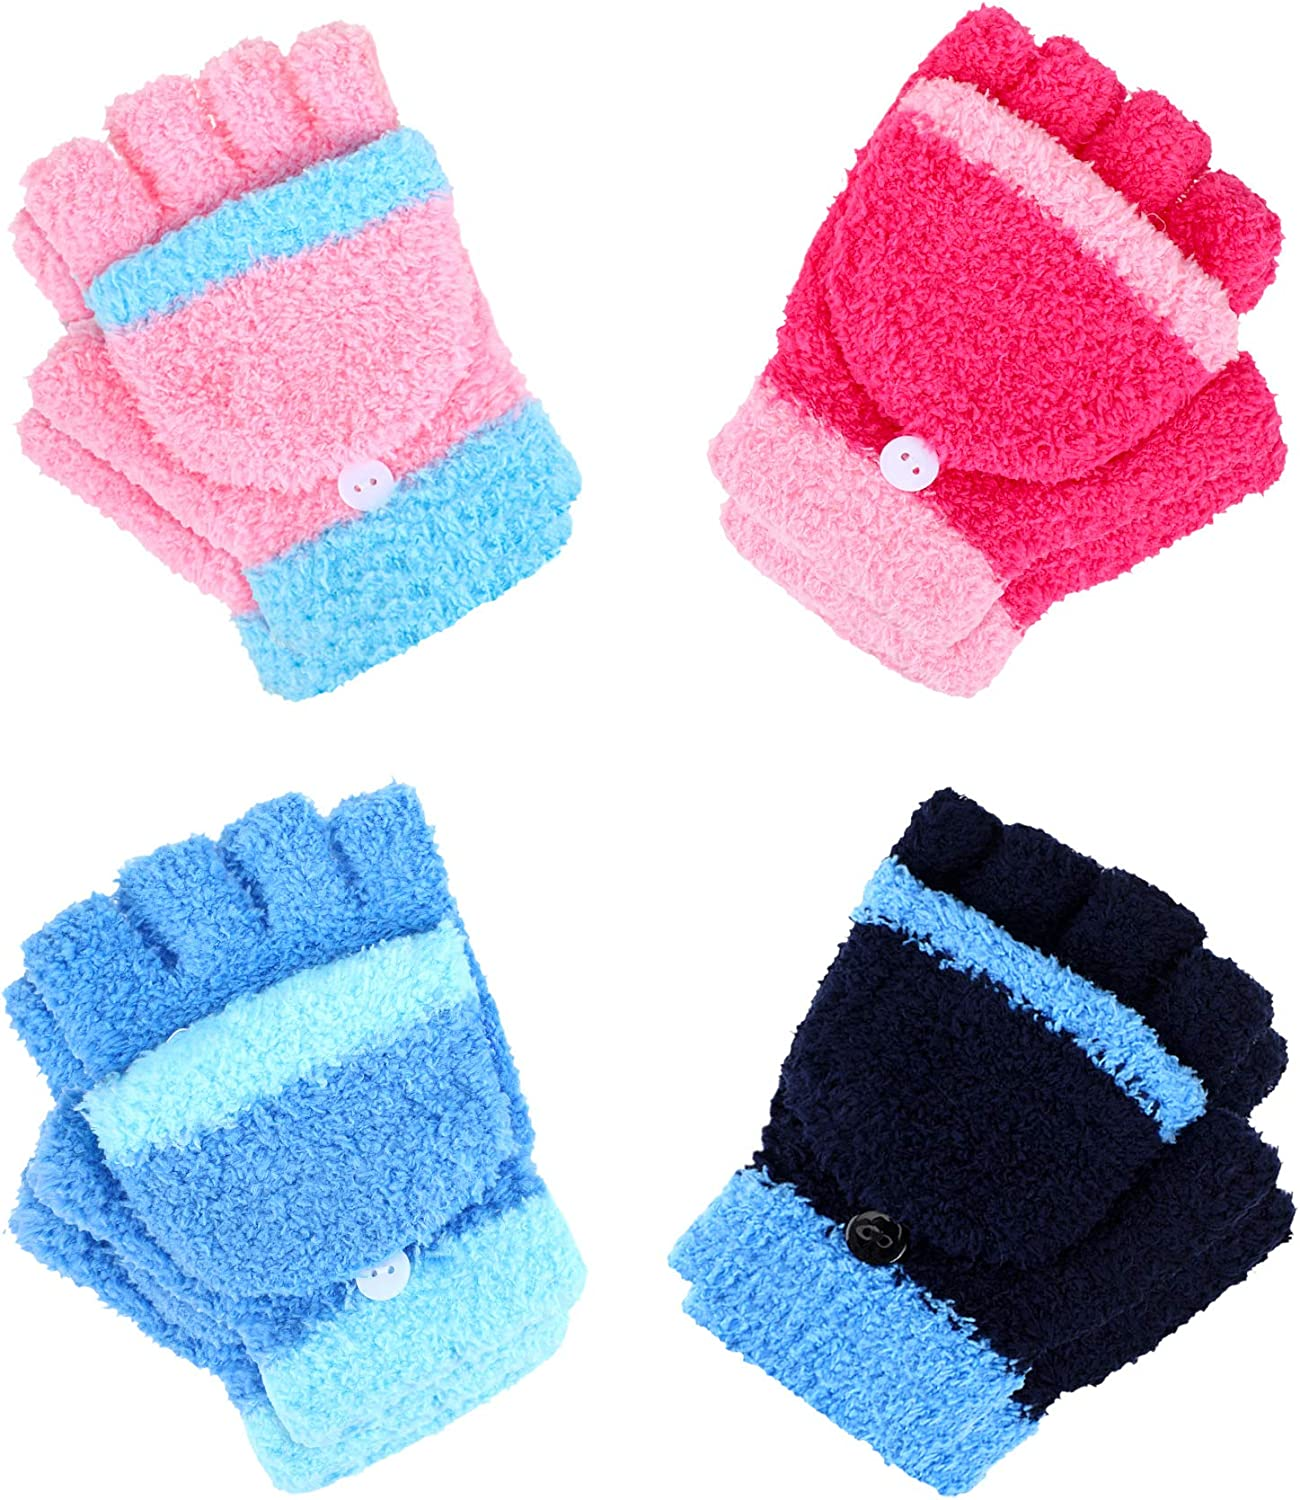 4 Pairs Convertible Fingerless Glove Warm Fleece Knitted Glove with Cover for Kids (Black, Light Blue, Pink, Rose Red)